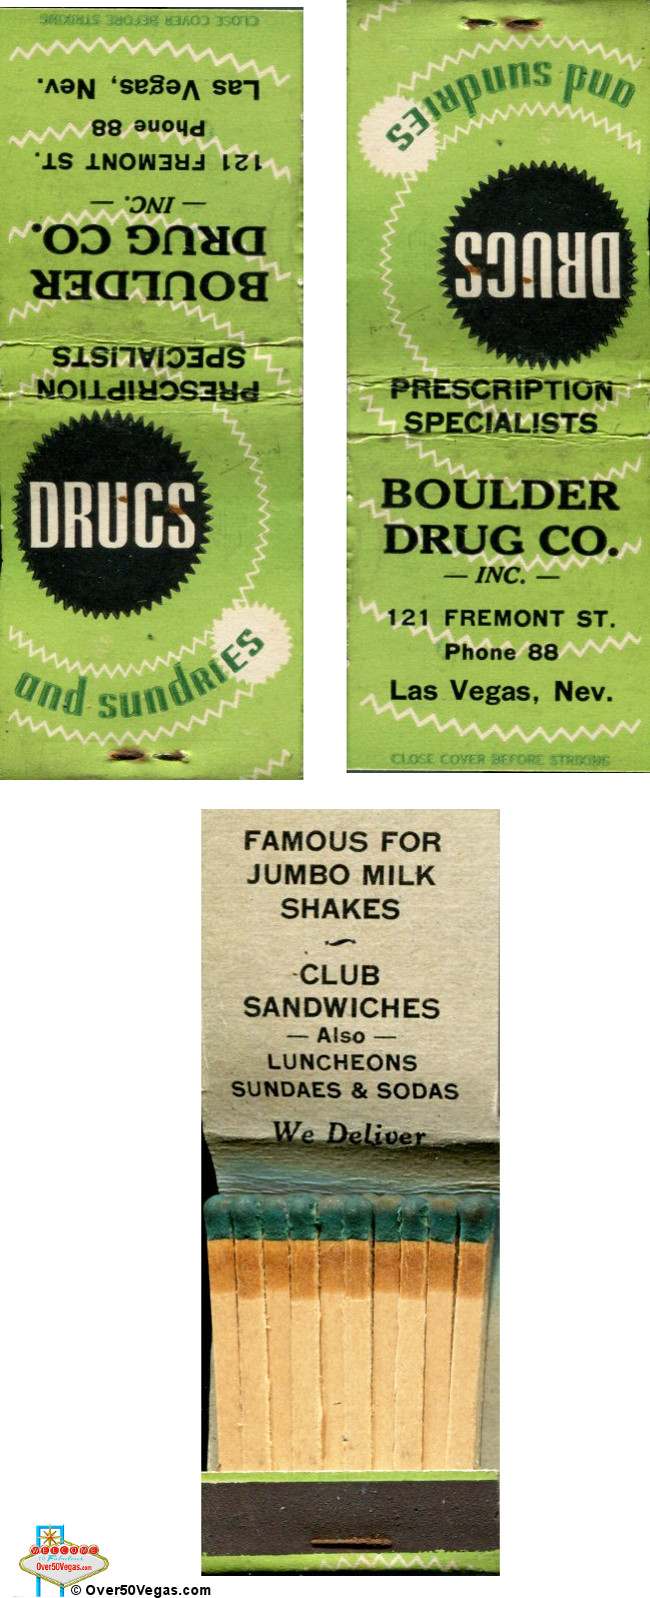 Boulder Drug Company was located at 121 Fremont St.